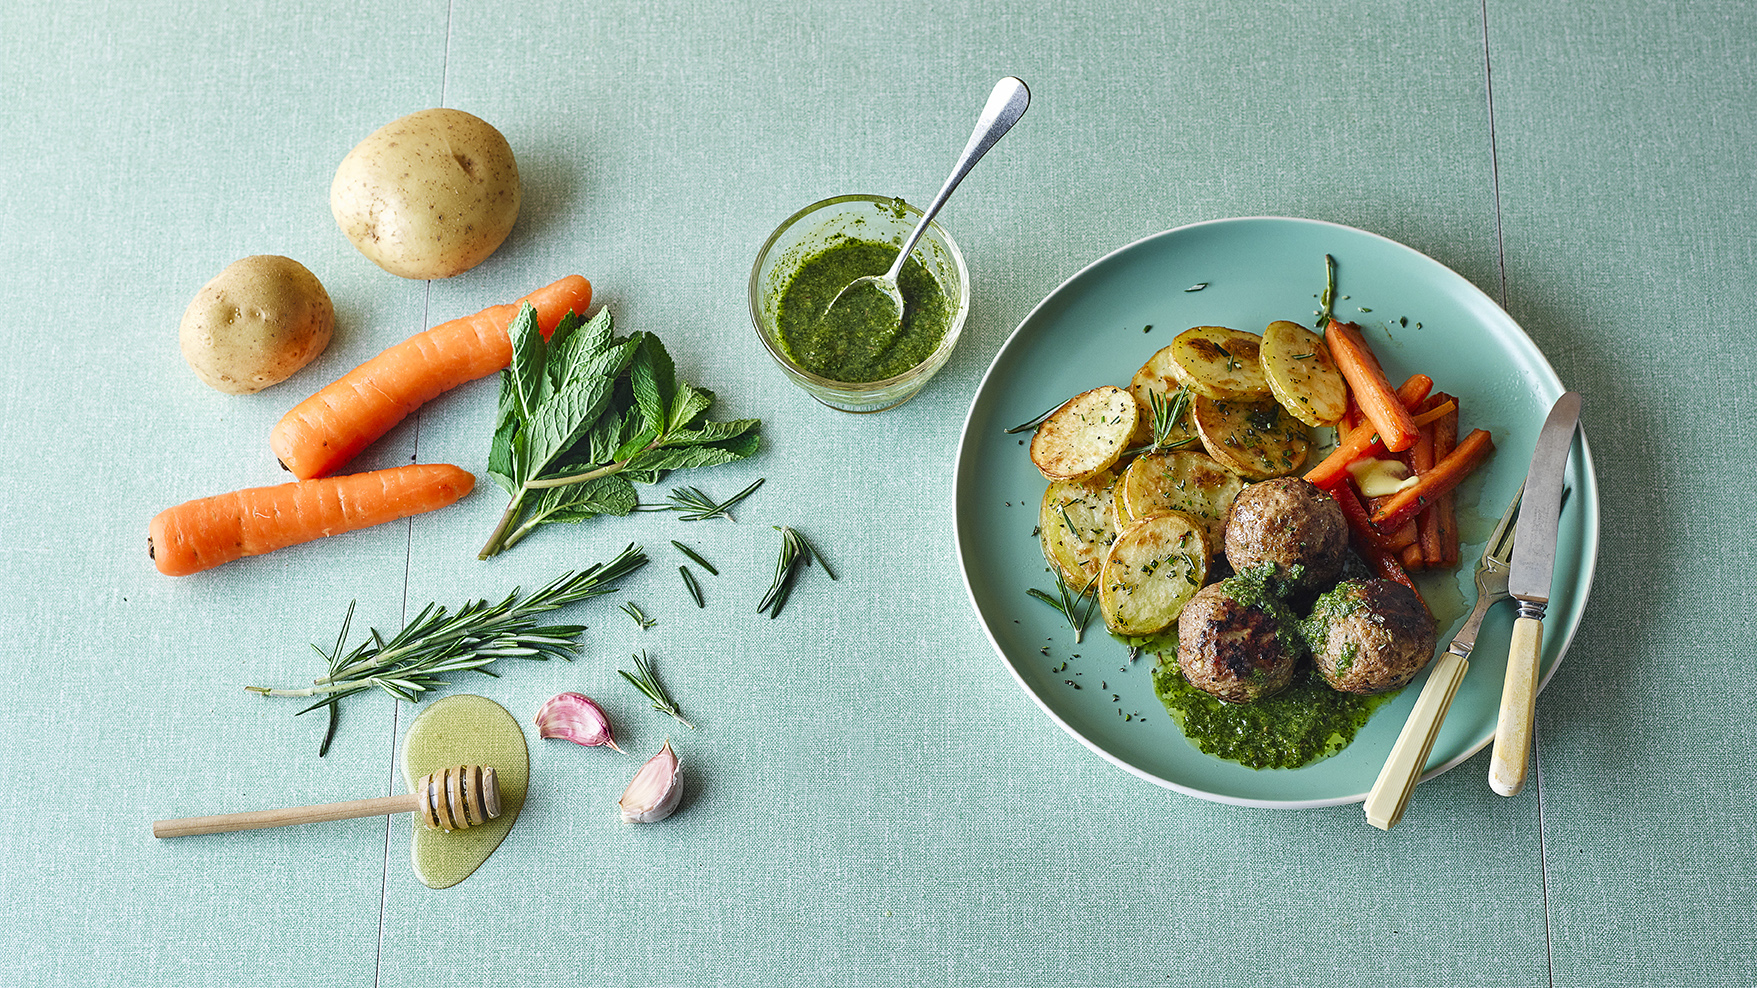 Rosemary Lamb Meatballs With Mint Sauce